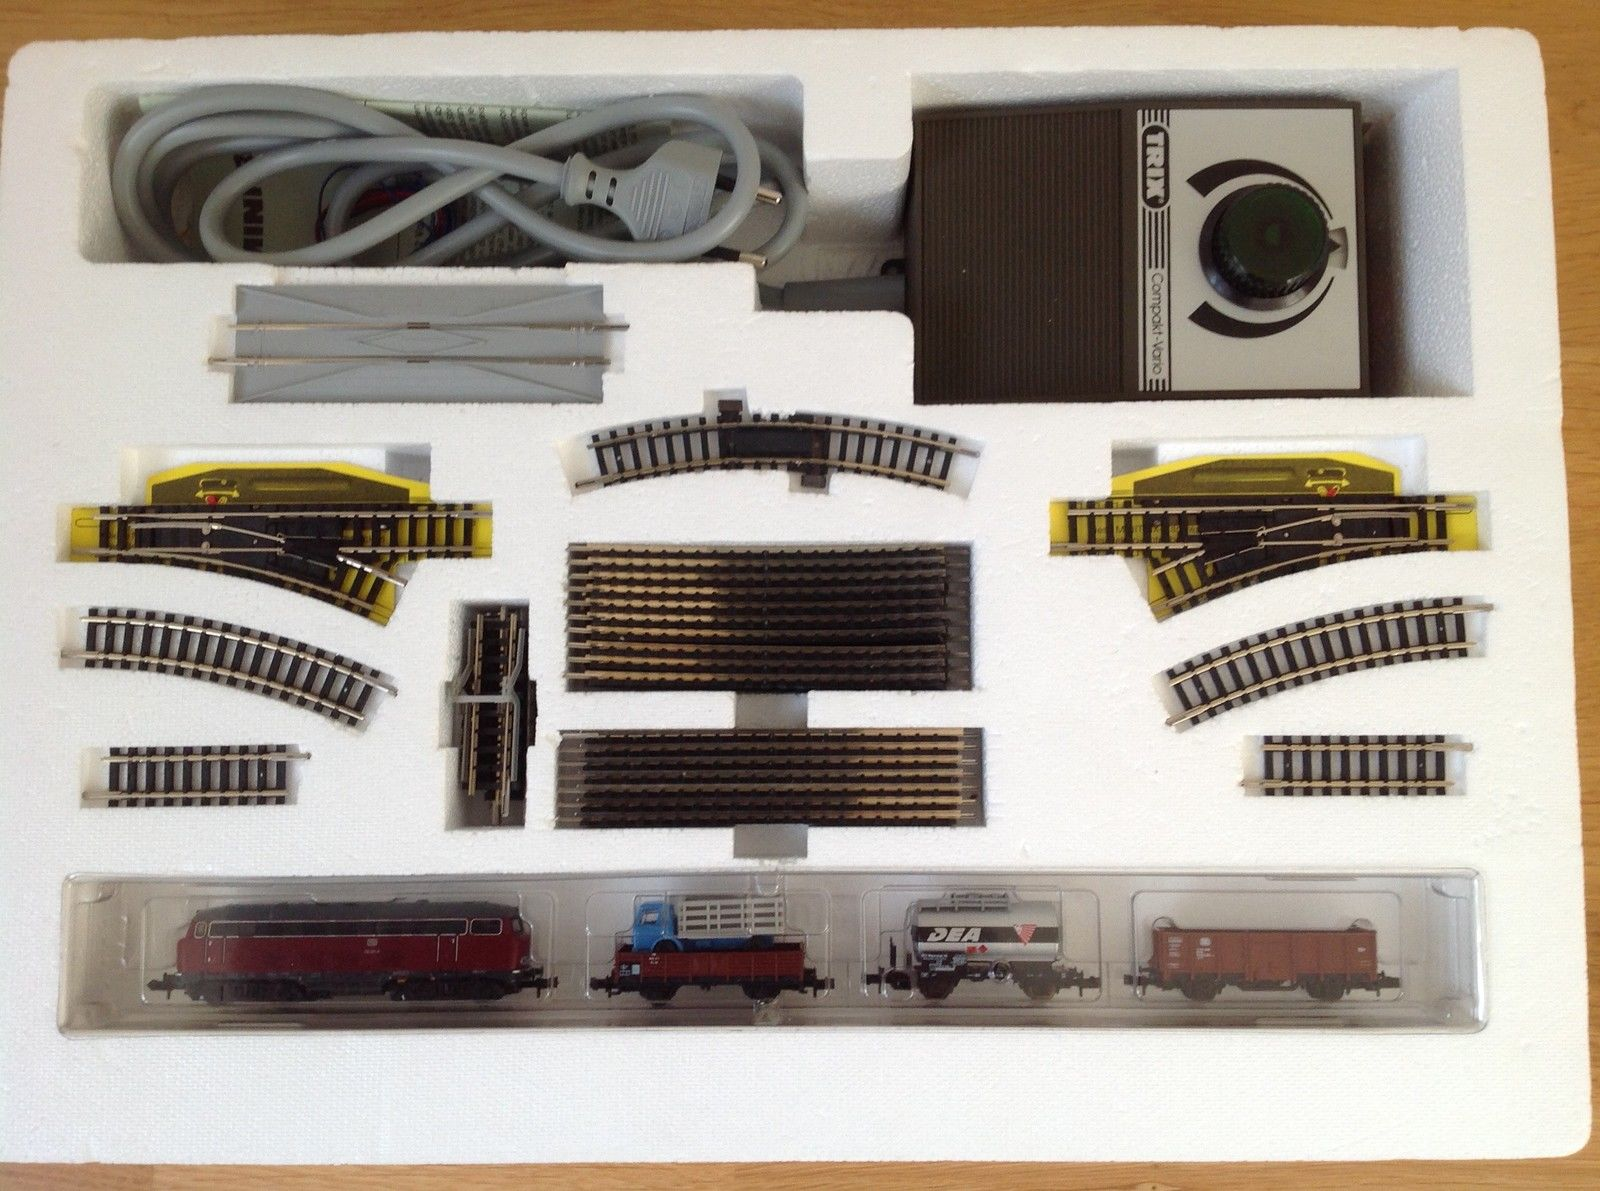 N Scale - Minitrix - 11070 - 4-Unit Freight Set with V 160 - Deutsche Bahn